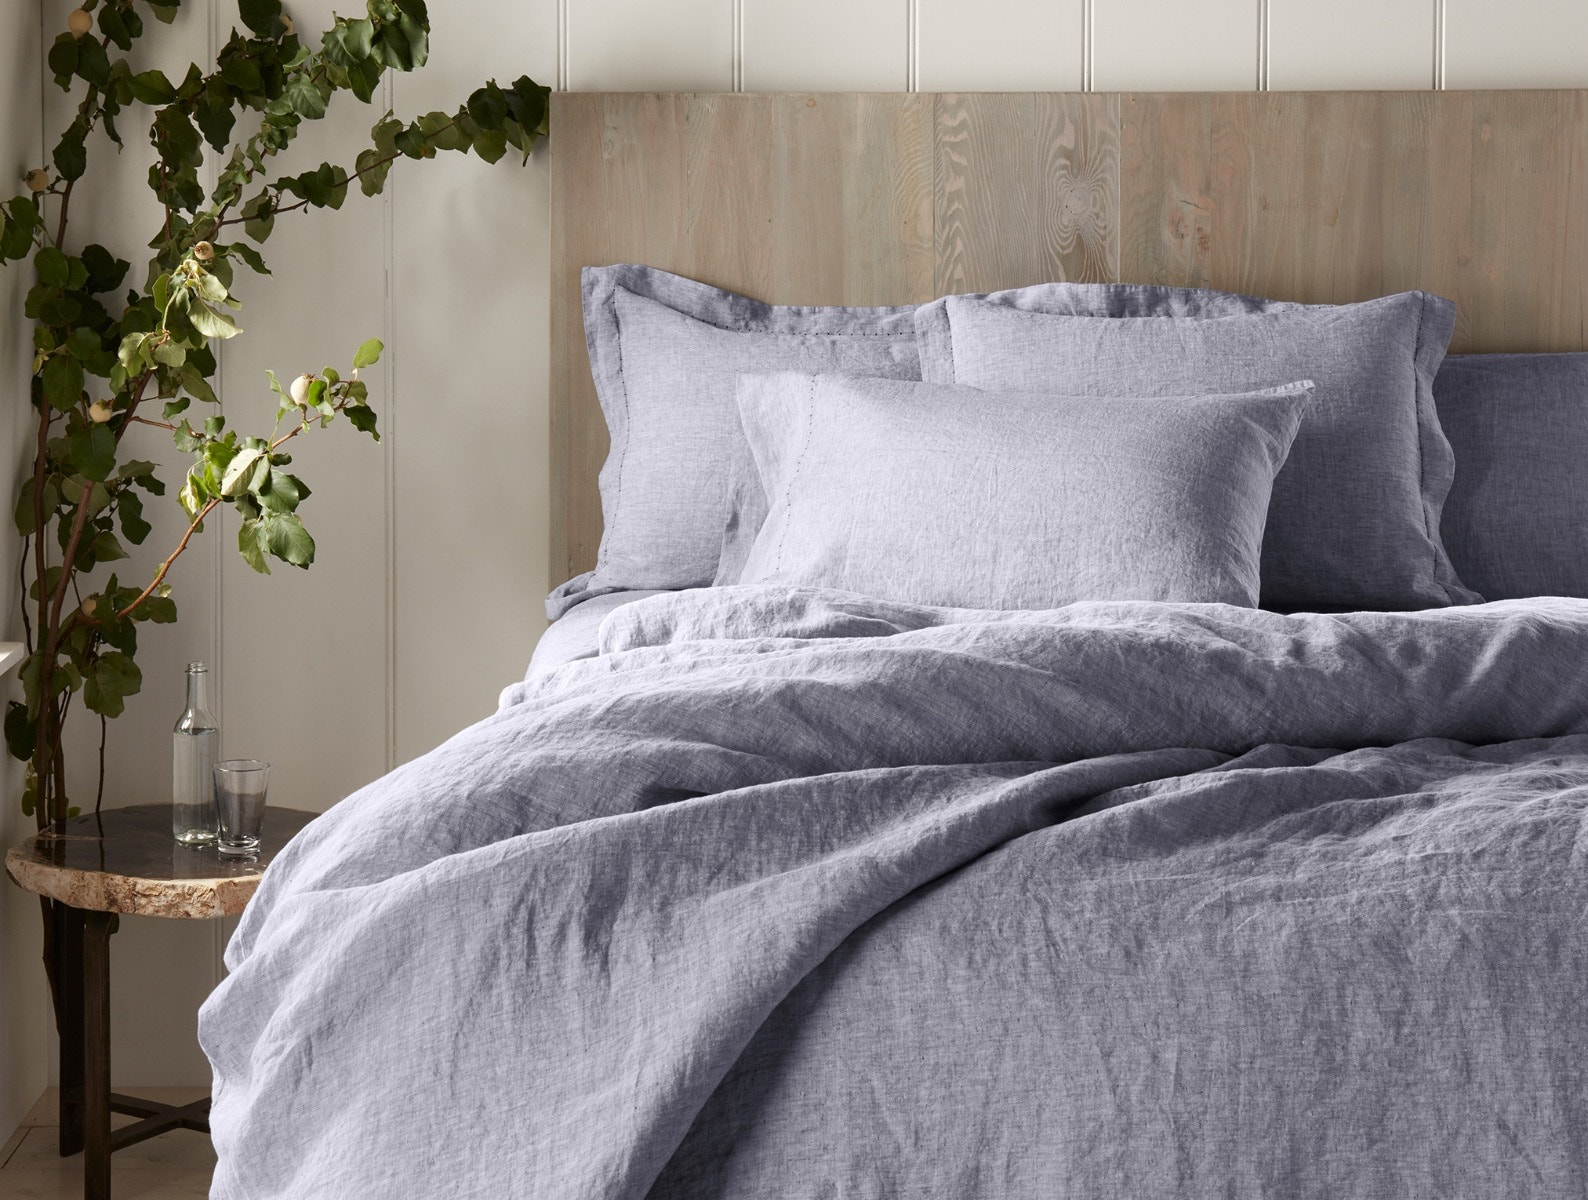 Organic Relaxed Linen Duvet Cover Bedding sets, Bed, Bed